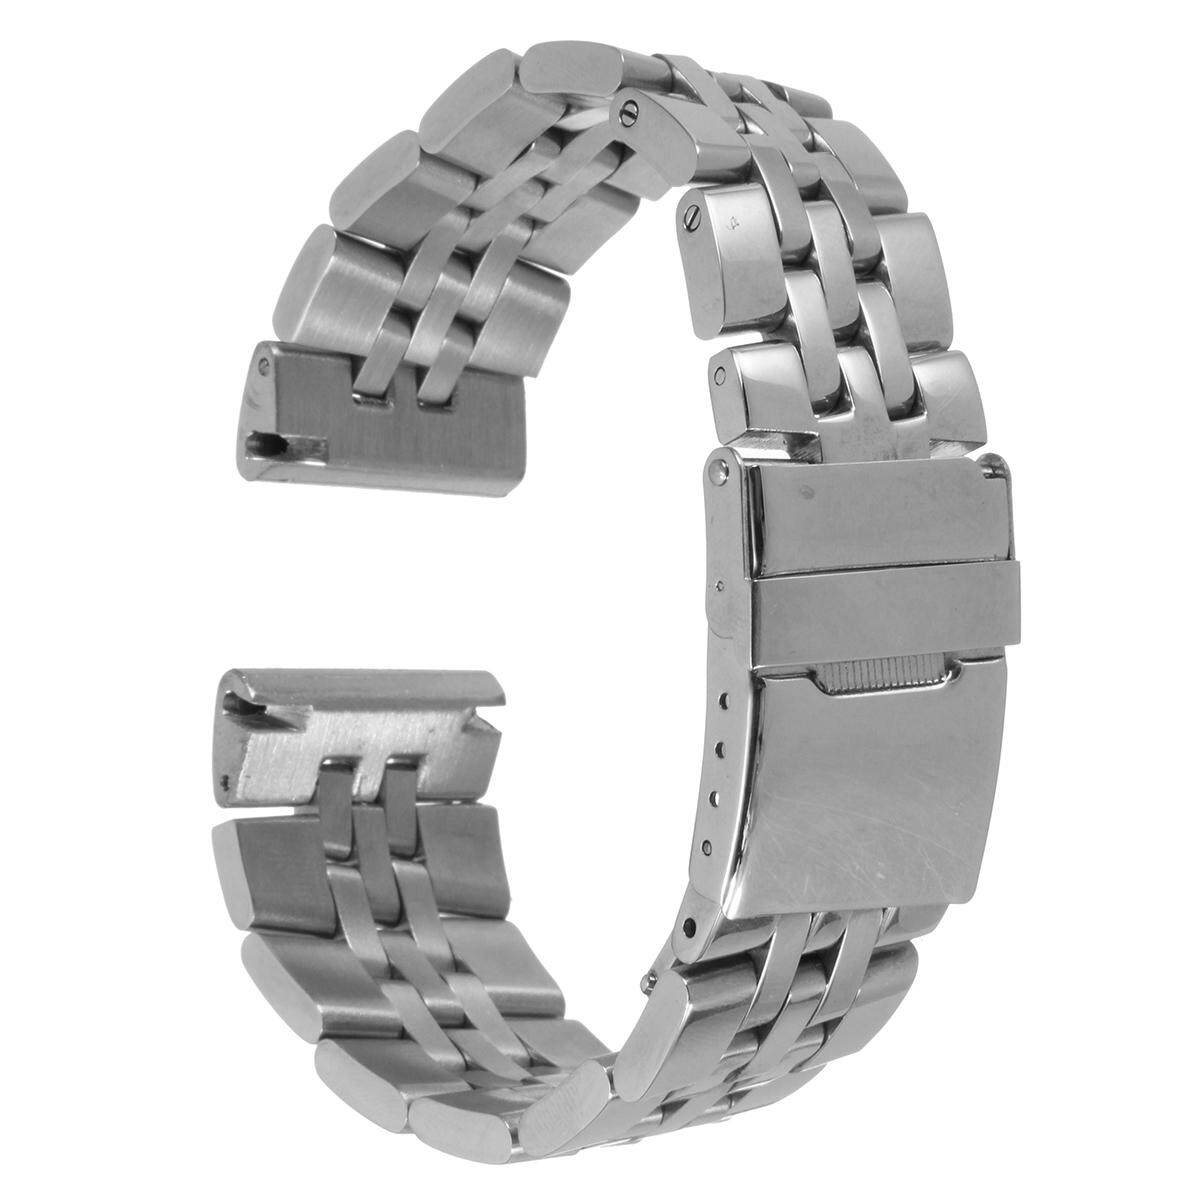 24MM Silver Watch Band Strap Polished Stainess Steel Bracelet For Breitling